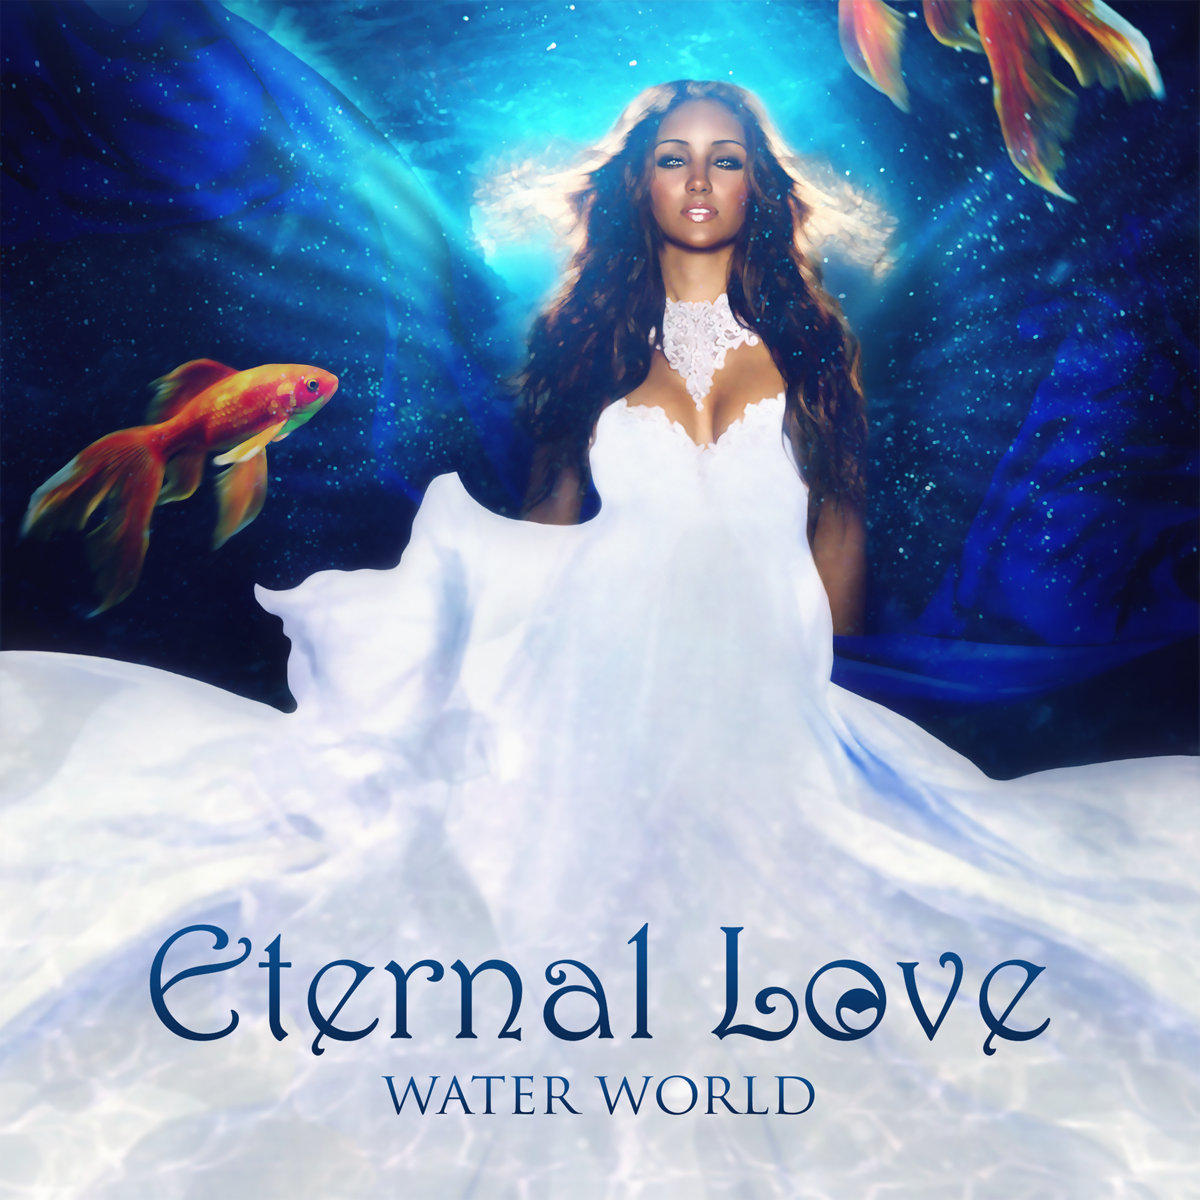 Eternal Love - Riding the Waves @ 'Water World' album (ambient, beautiful)